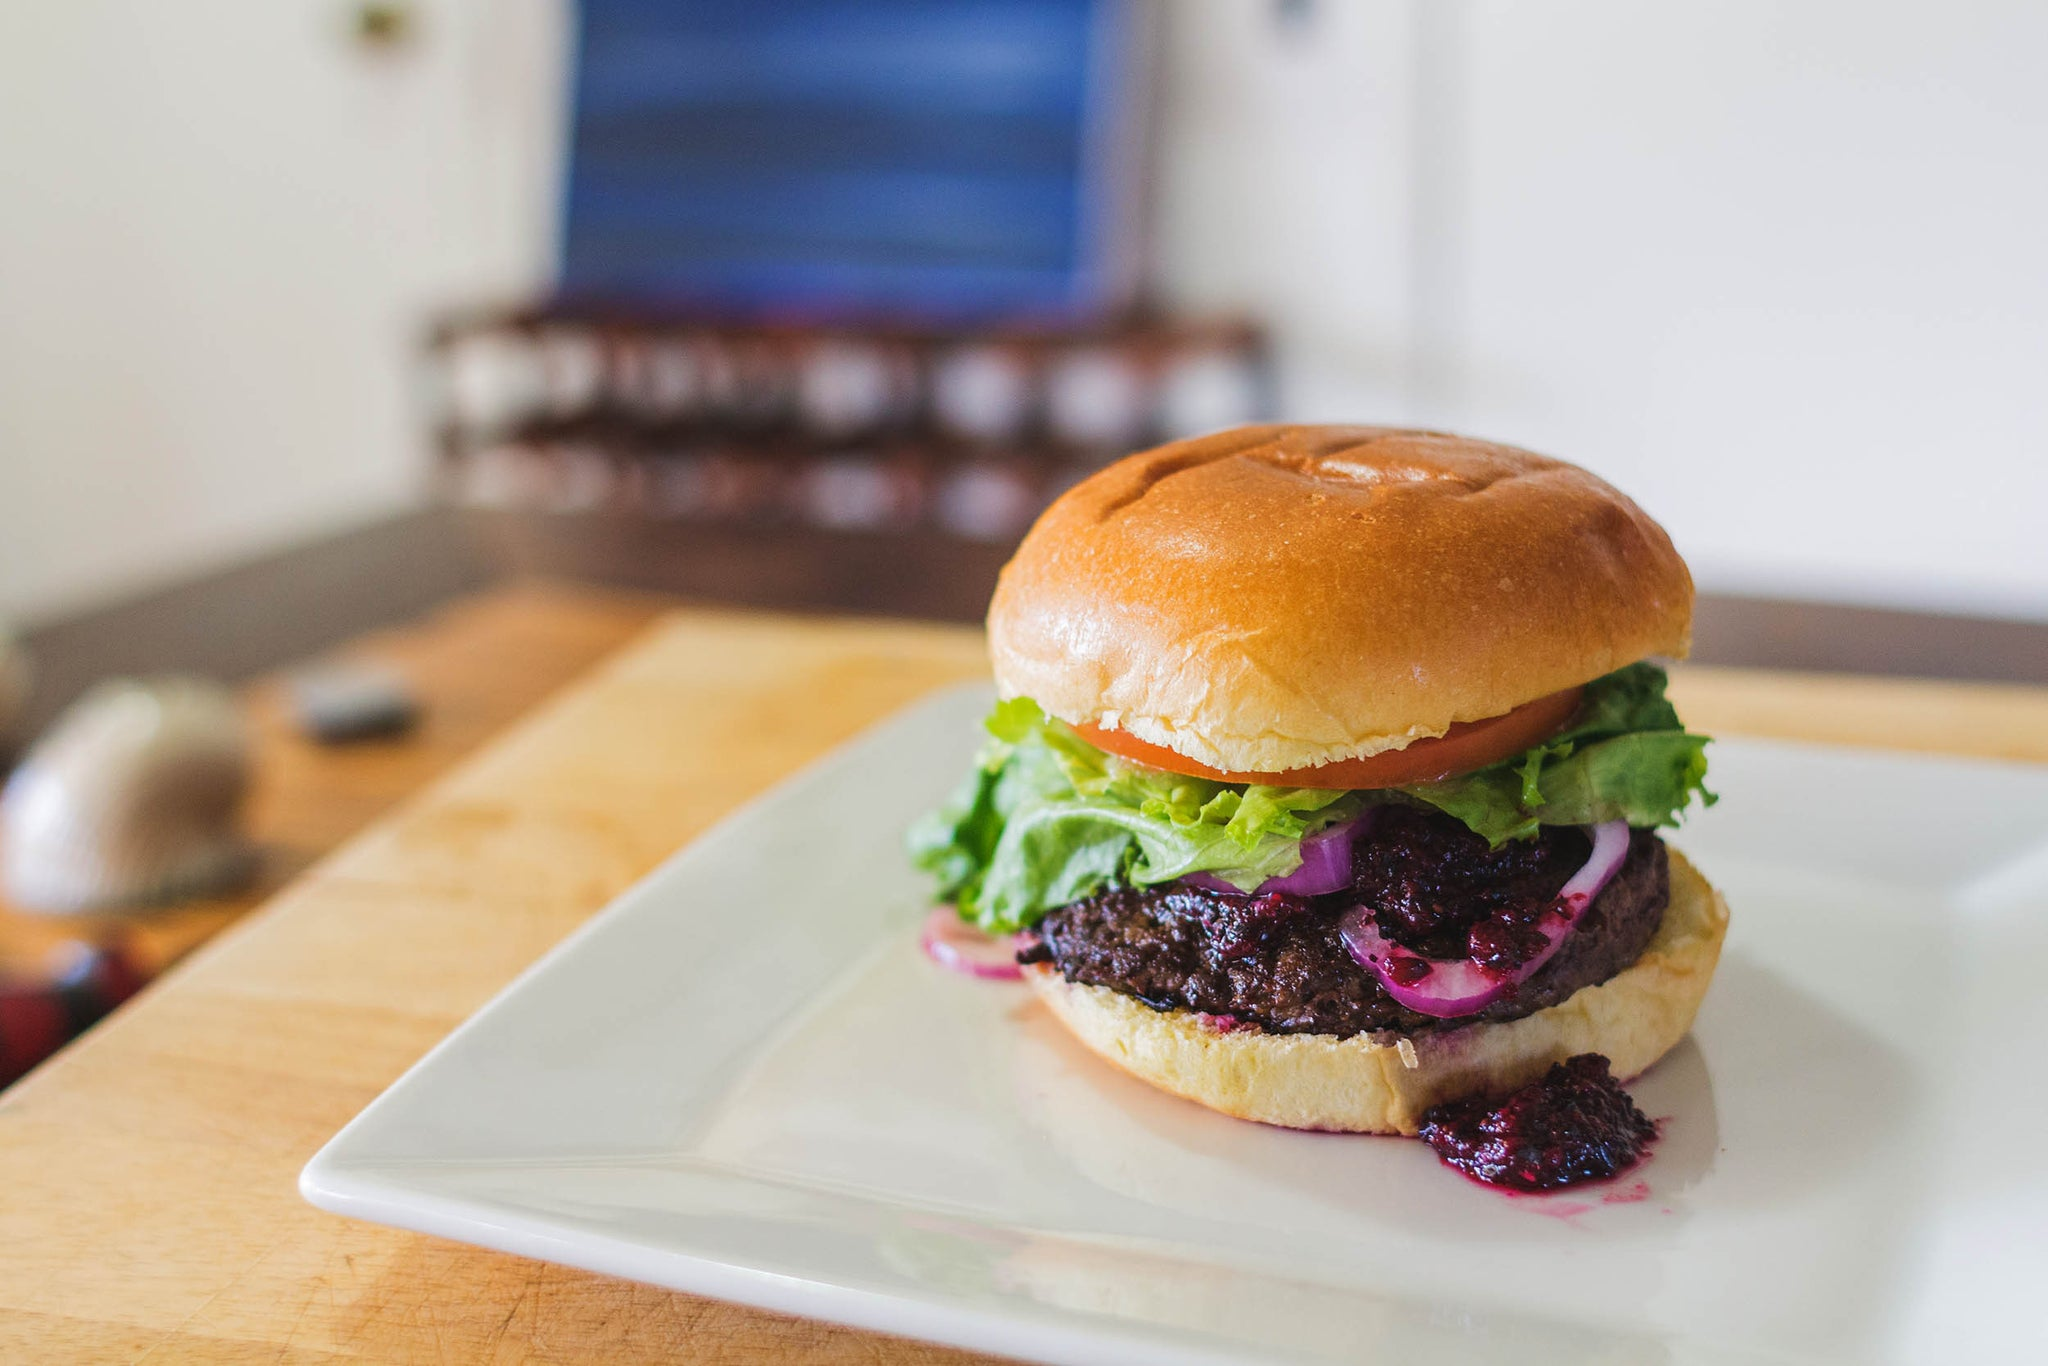 Recipe: Black Bear Burger with Blueberry BBQ Sauce